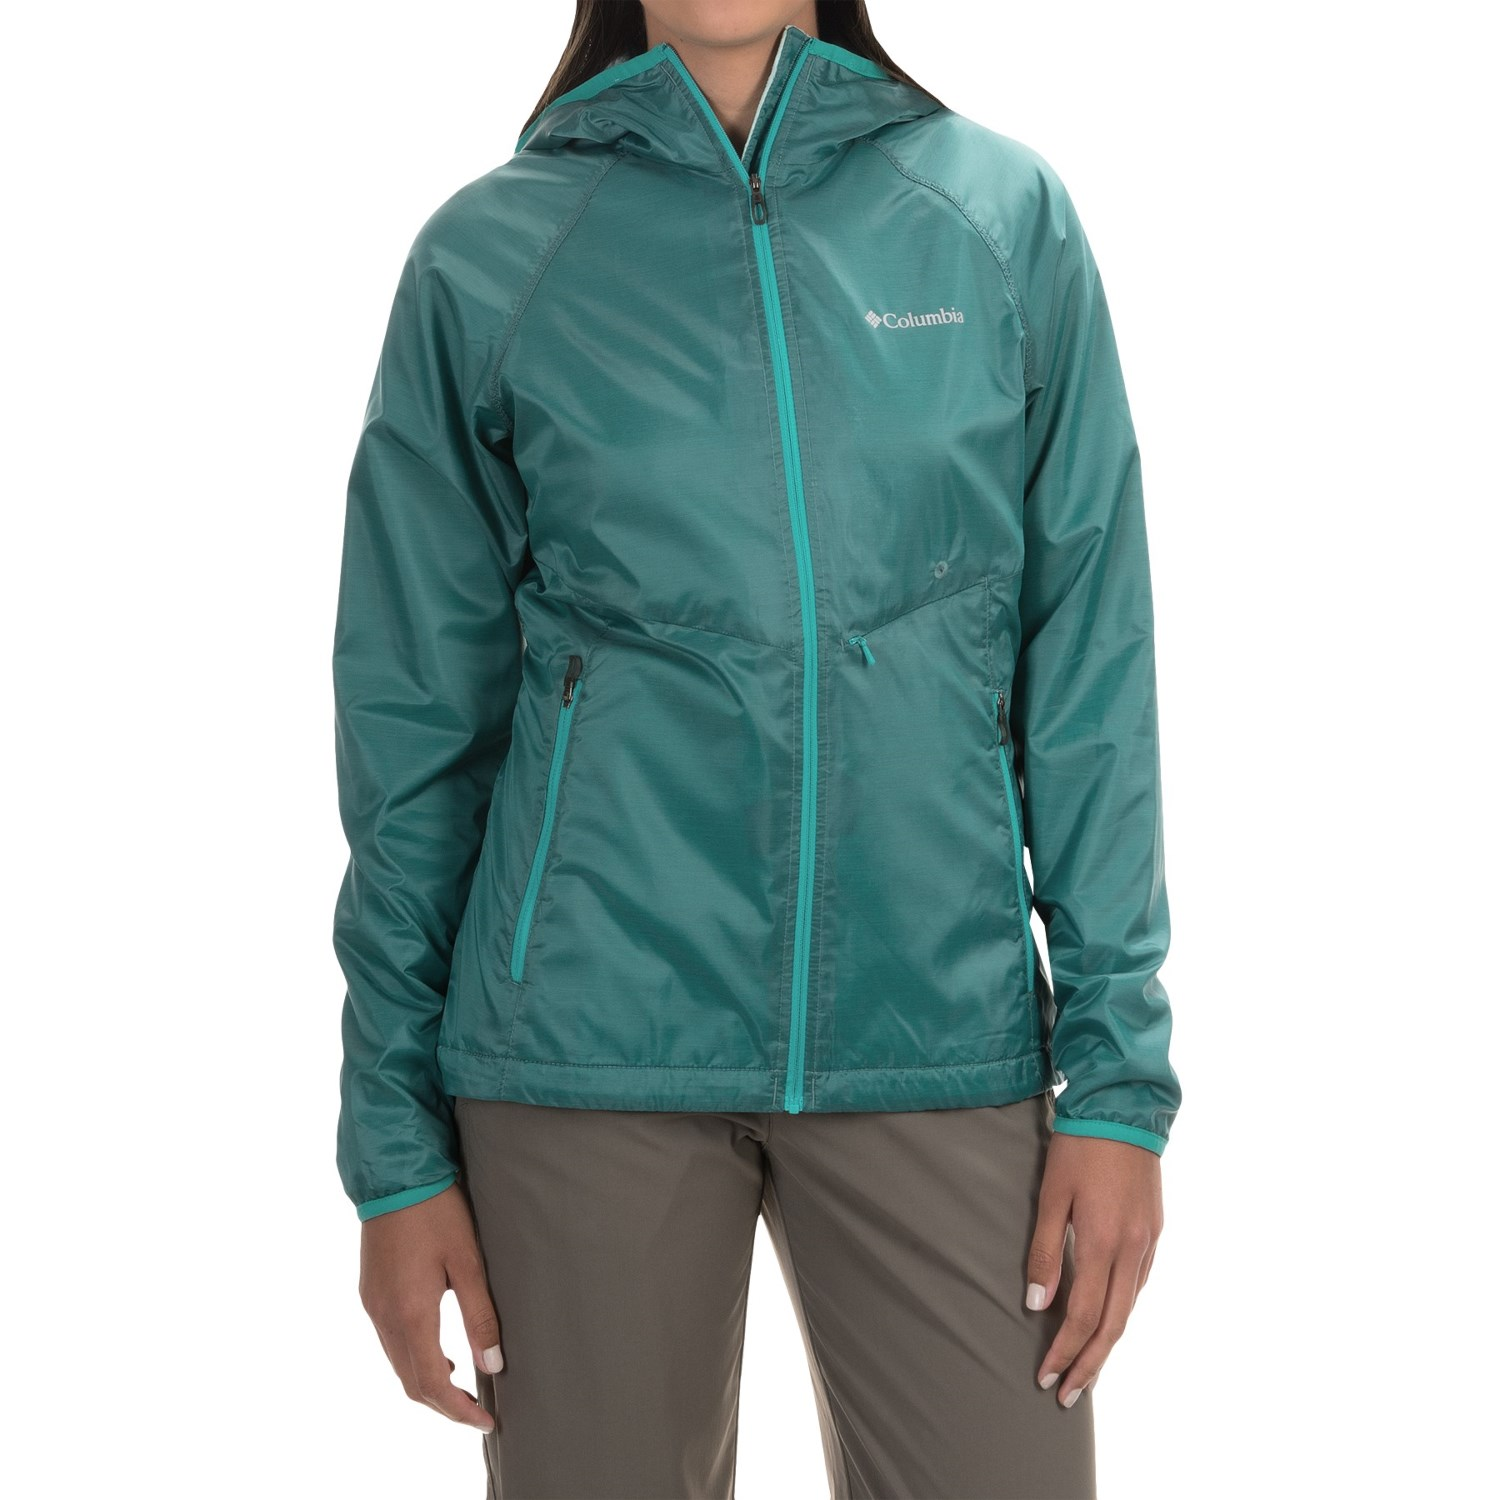 how to get a pass for shopping at columbia sportswear